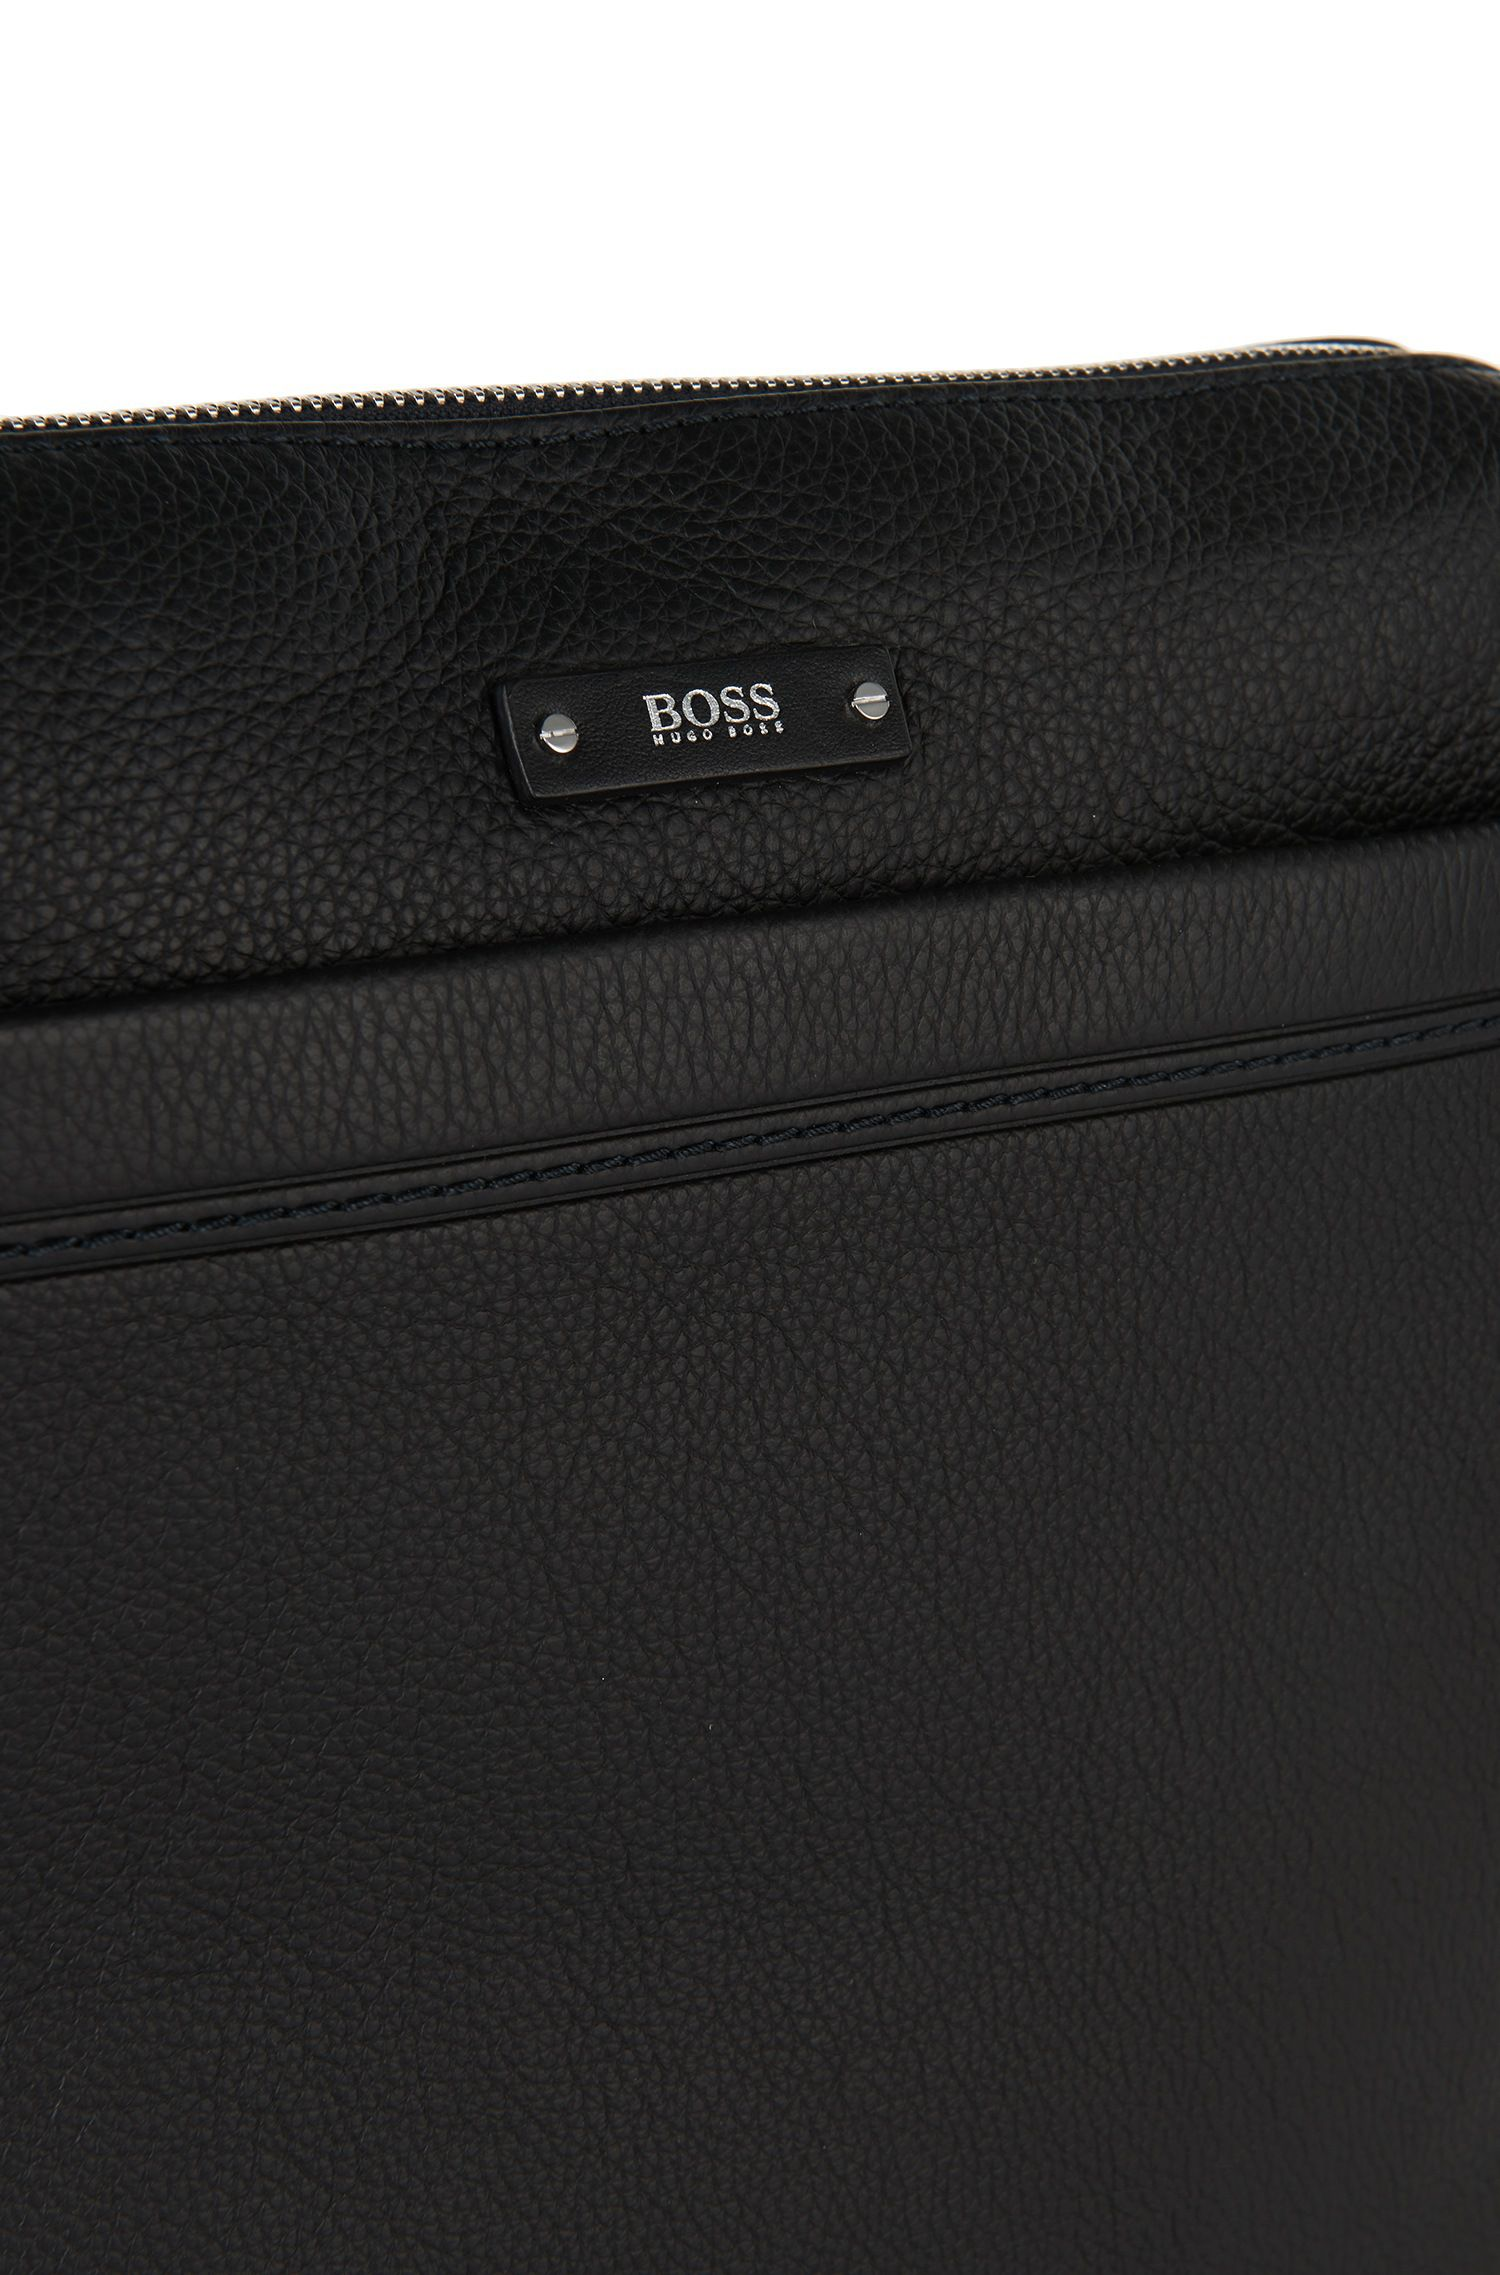 Sac coursier BOSS Travel Line en cuir grainé, Noir